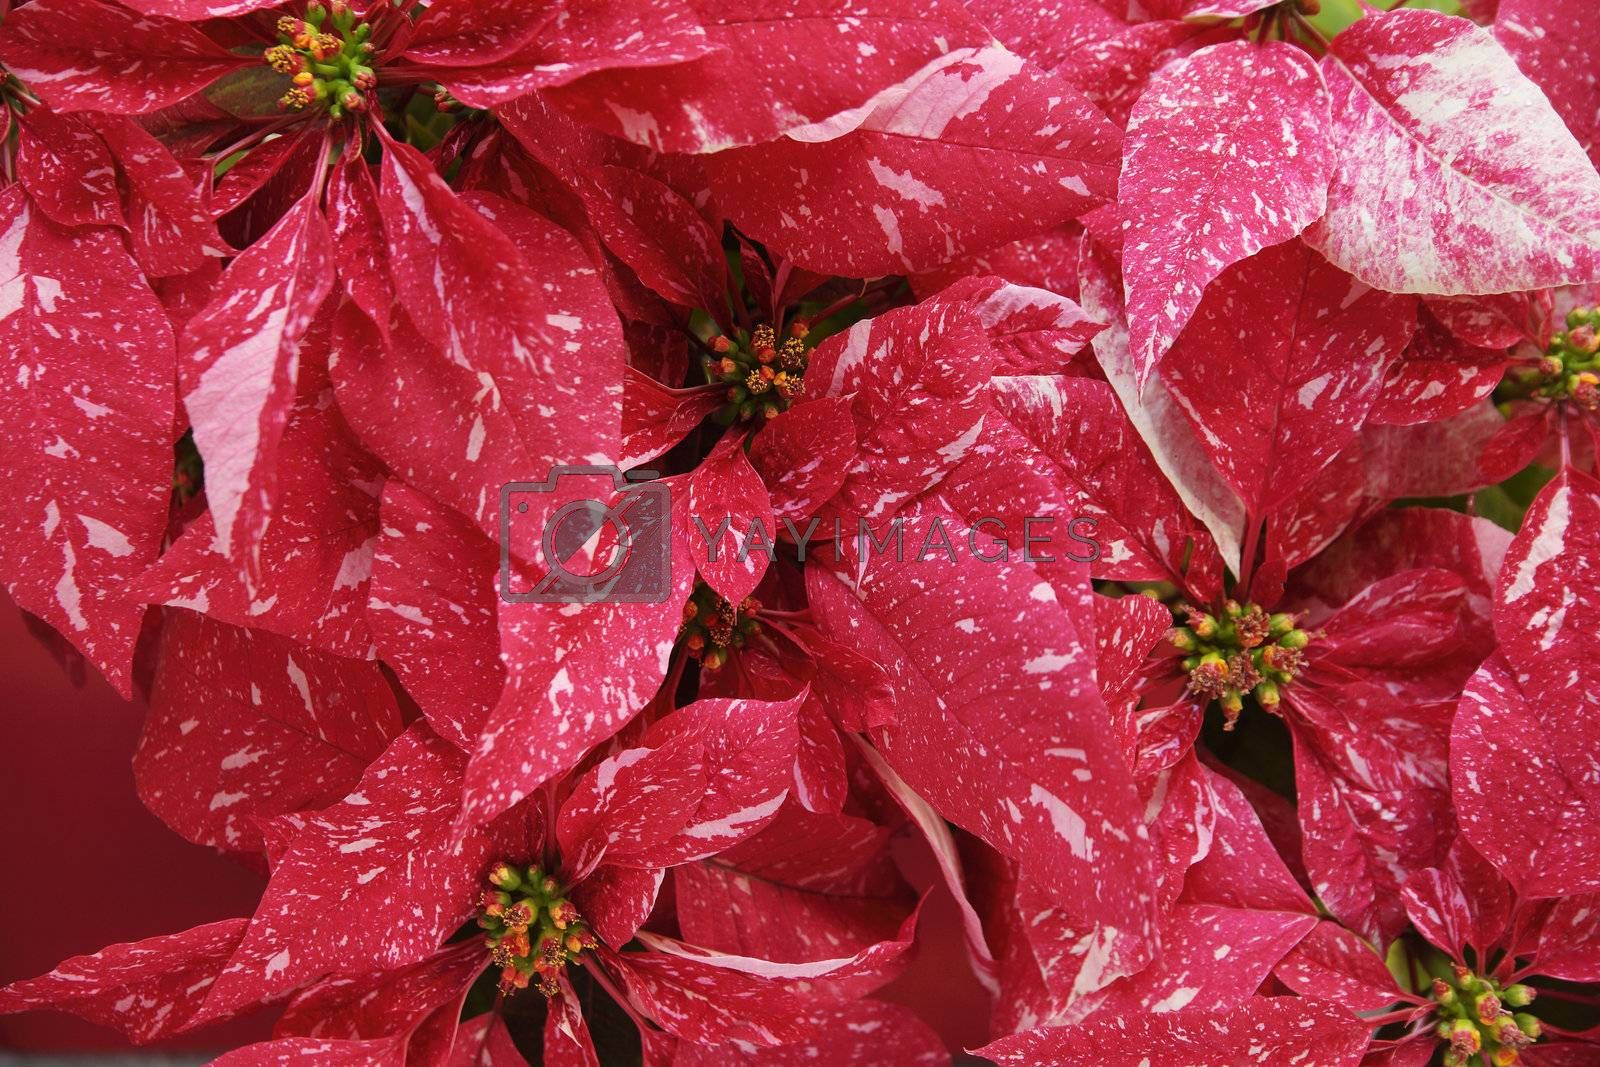 Christmas red poinsettias with distinctive pink markings